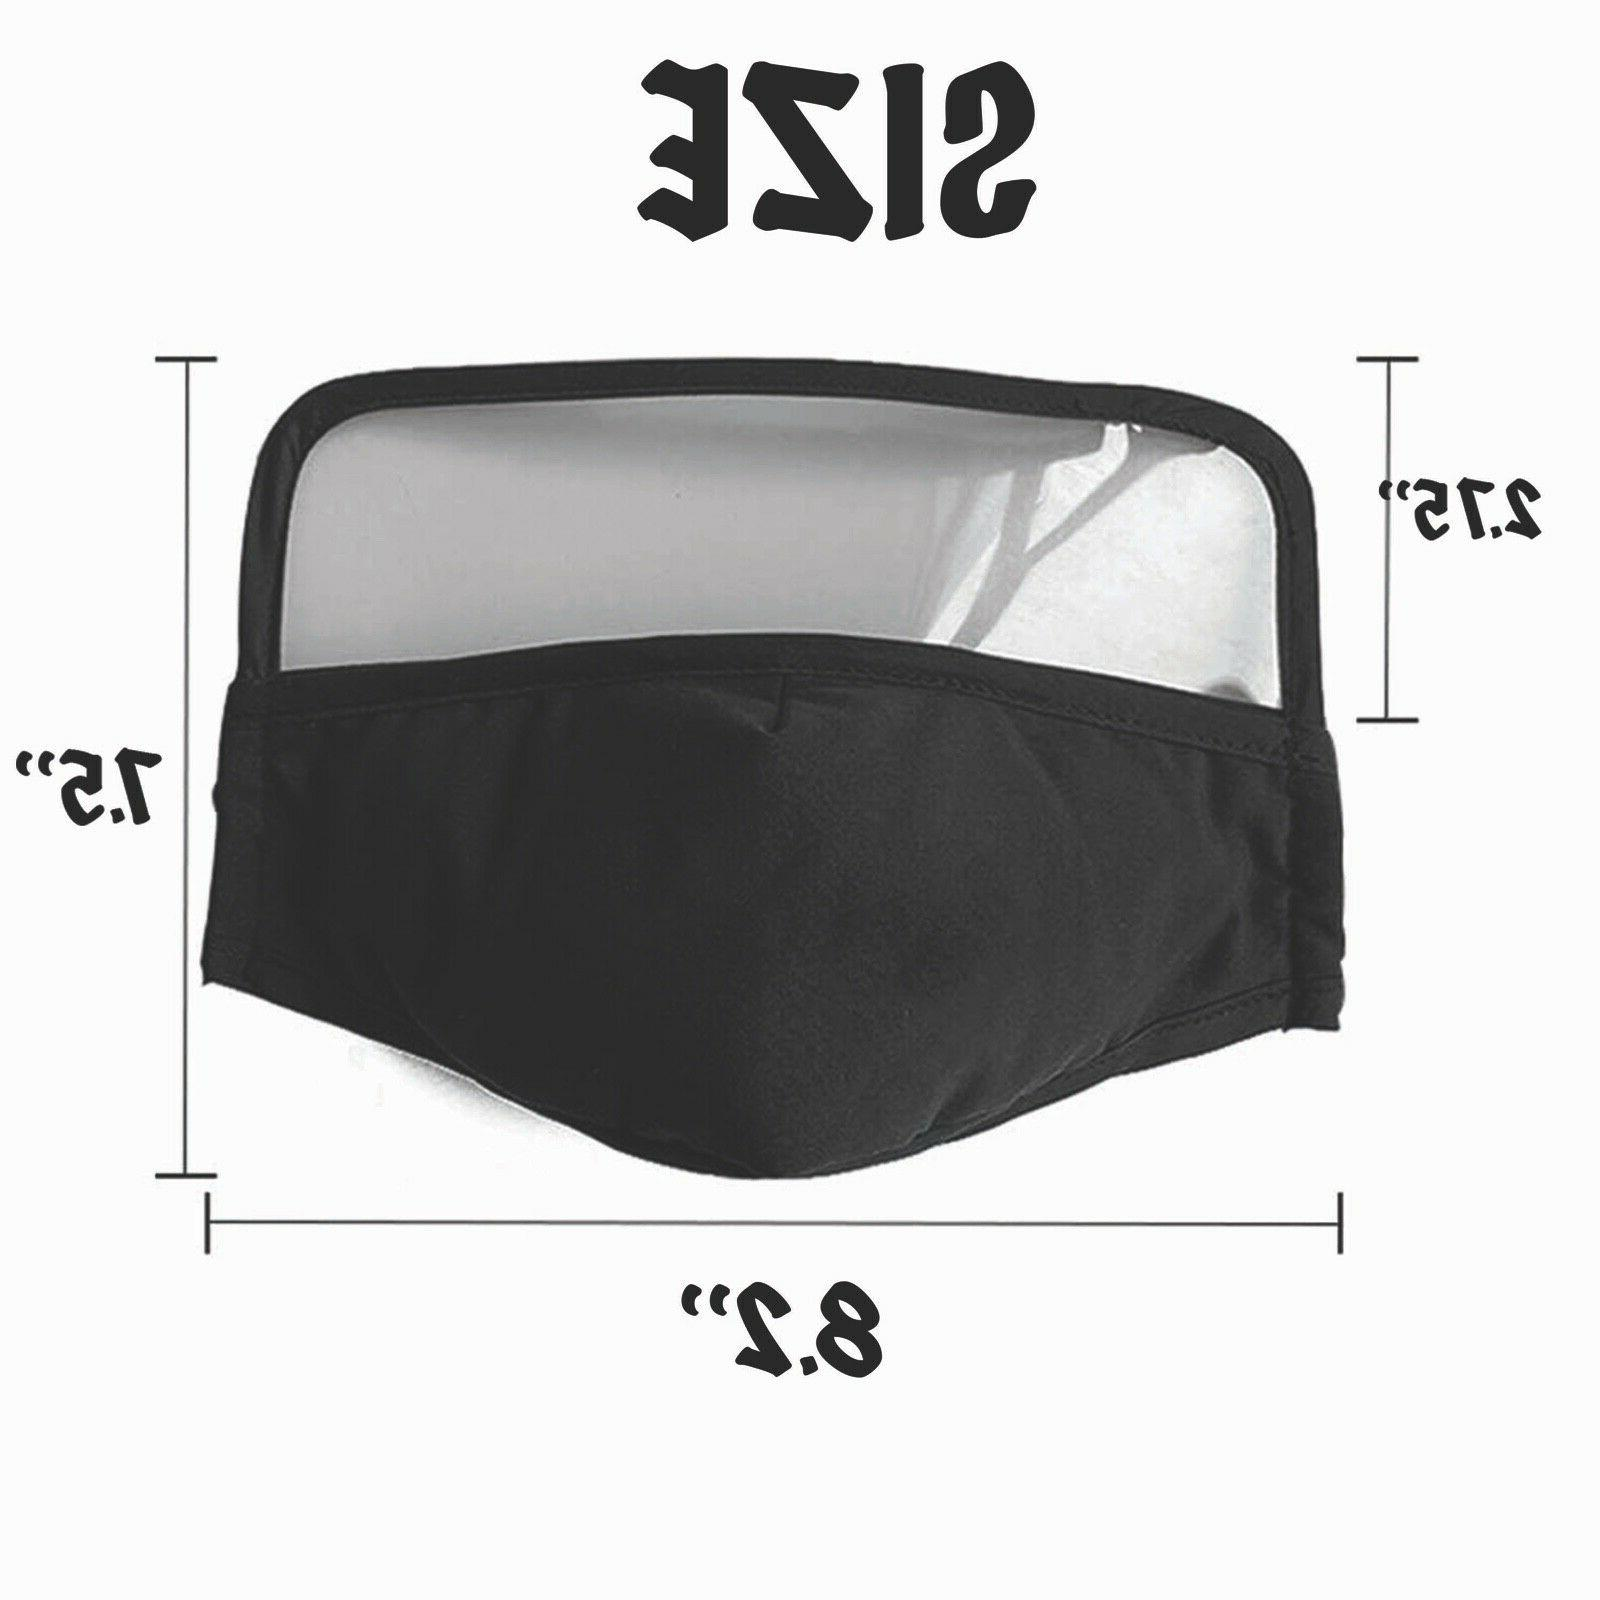 Reusable With Eye Shield Vent, Filter Pocket, Wire